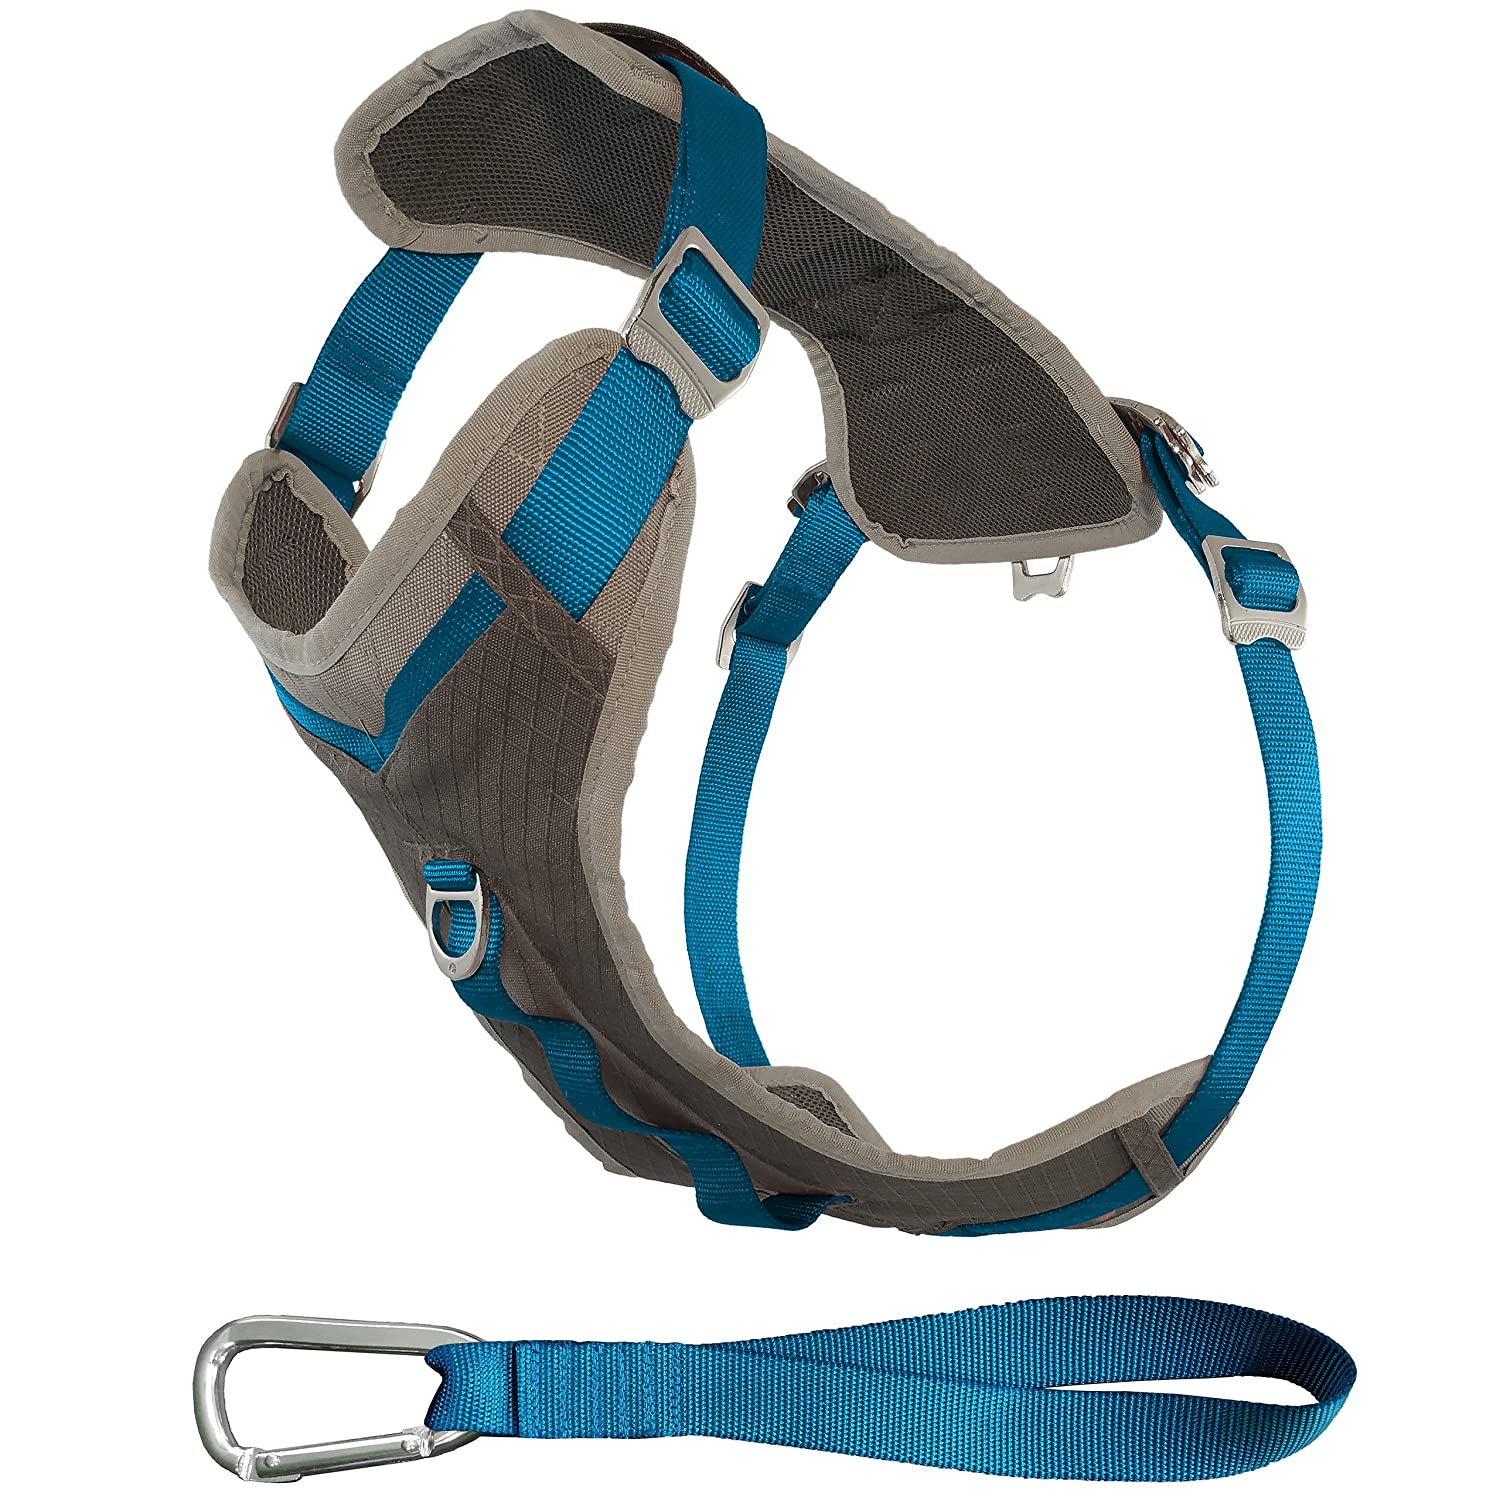 Coastal bluee Grey S Coastal bluee Grey S Kurgo Journey Multi-Use Dog Harness, Reflective Harness, Dog Running Harness, Dog Walking Harness, Dog Hiking Harness, bluee Grey, Small